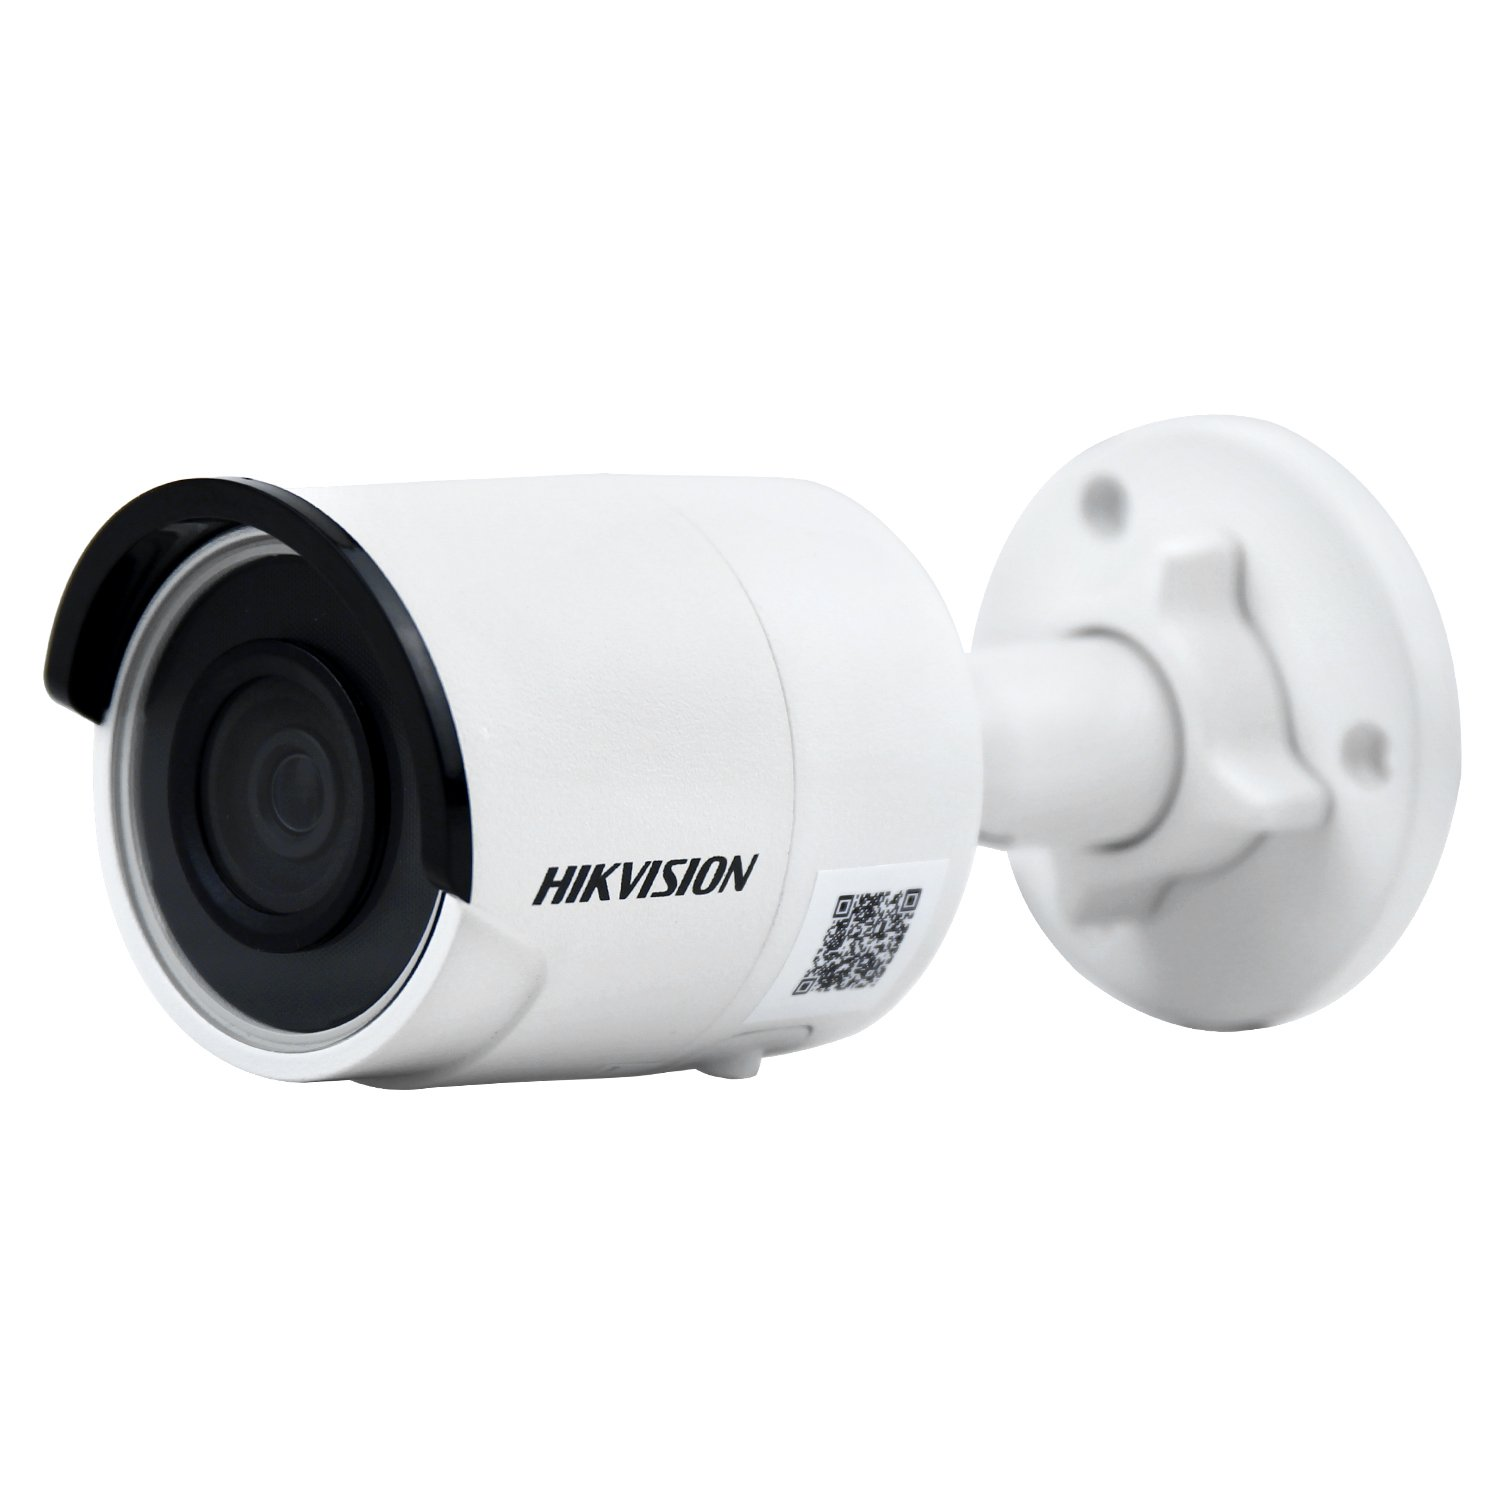 HIKVISION DS-2CD2035FWD-I 3.0 MP Outdoor IP Camera avec IR-CUT Prime 128 Jour Nuit Détection de mouvement PoE accès à distance Plug and Play IR de la découpe